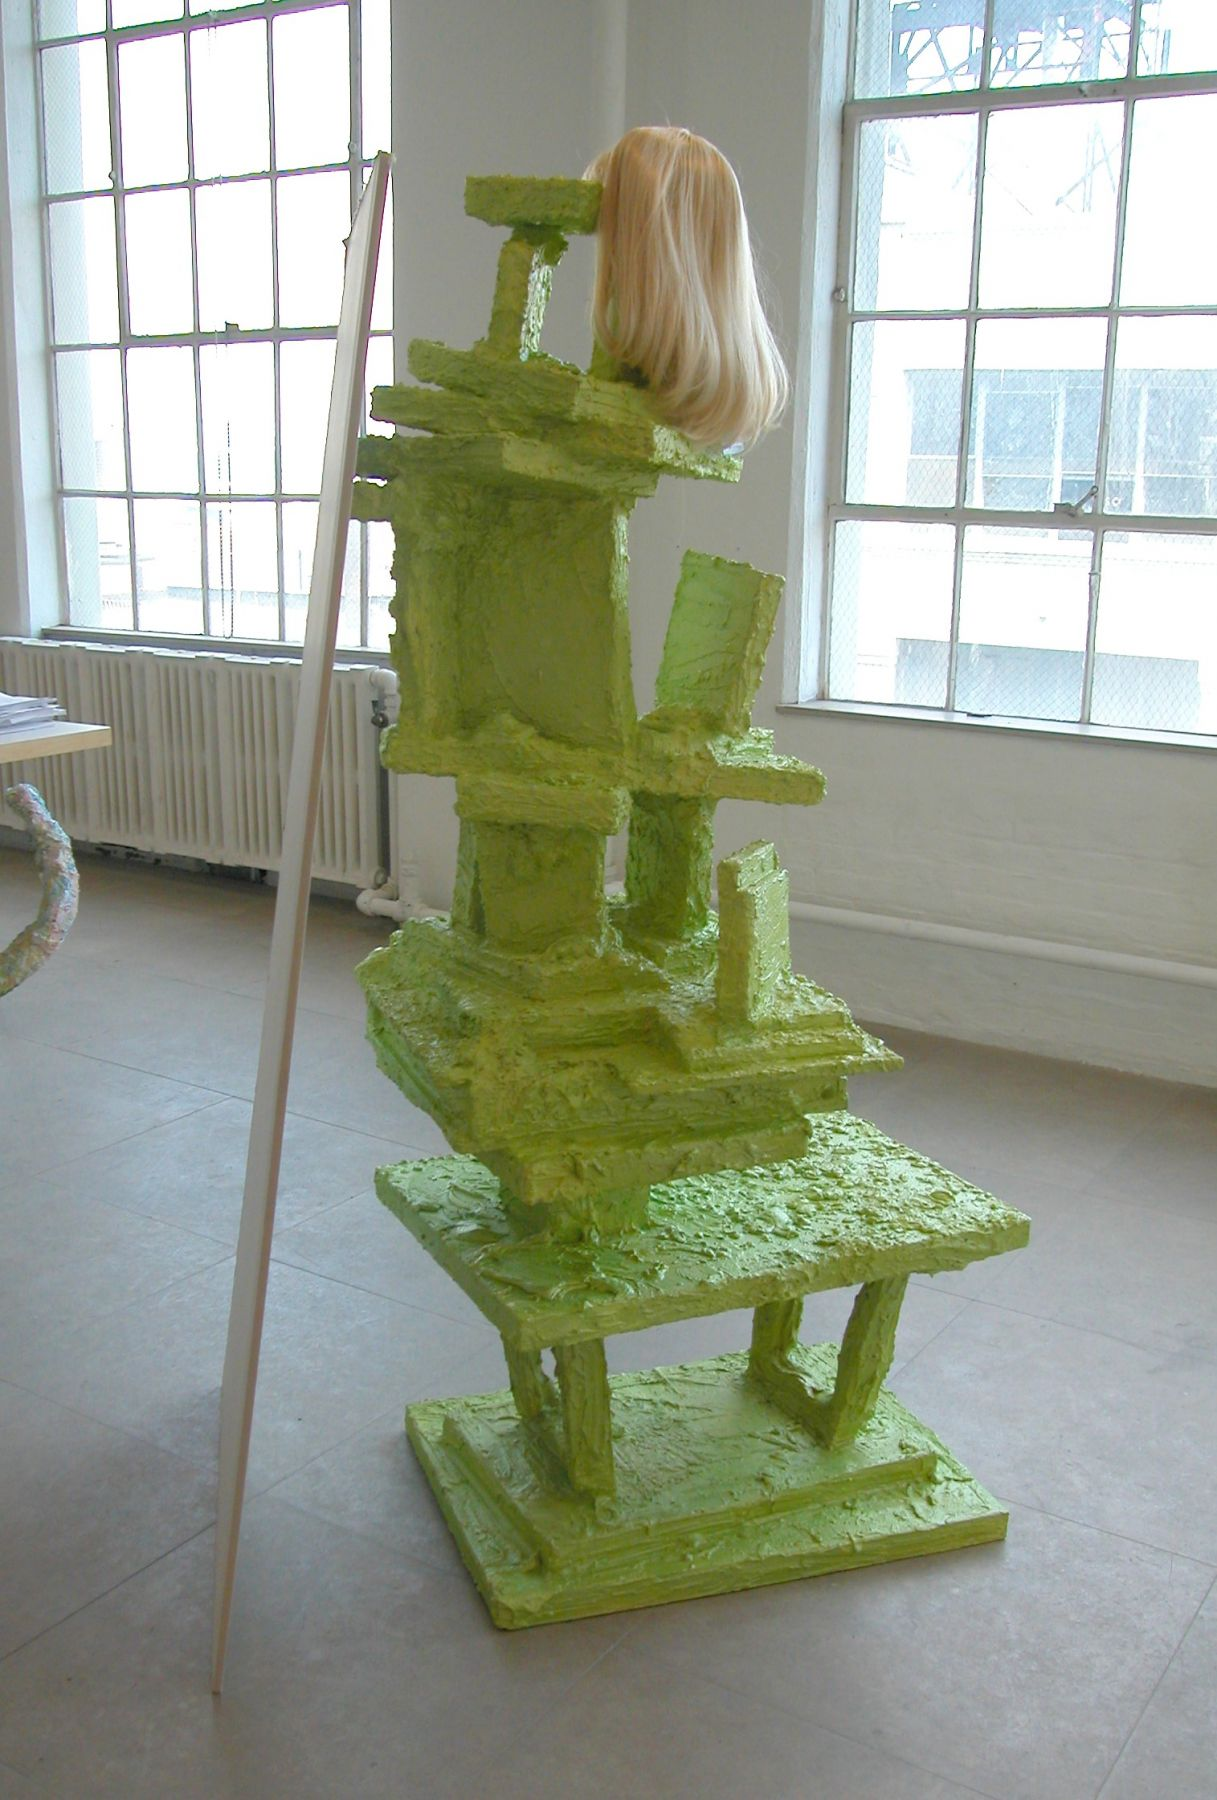 Cindy (Green), 2004,  mixed media sculpture,  72 x 37 x 31 inches